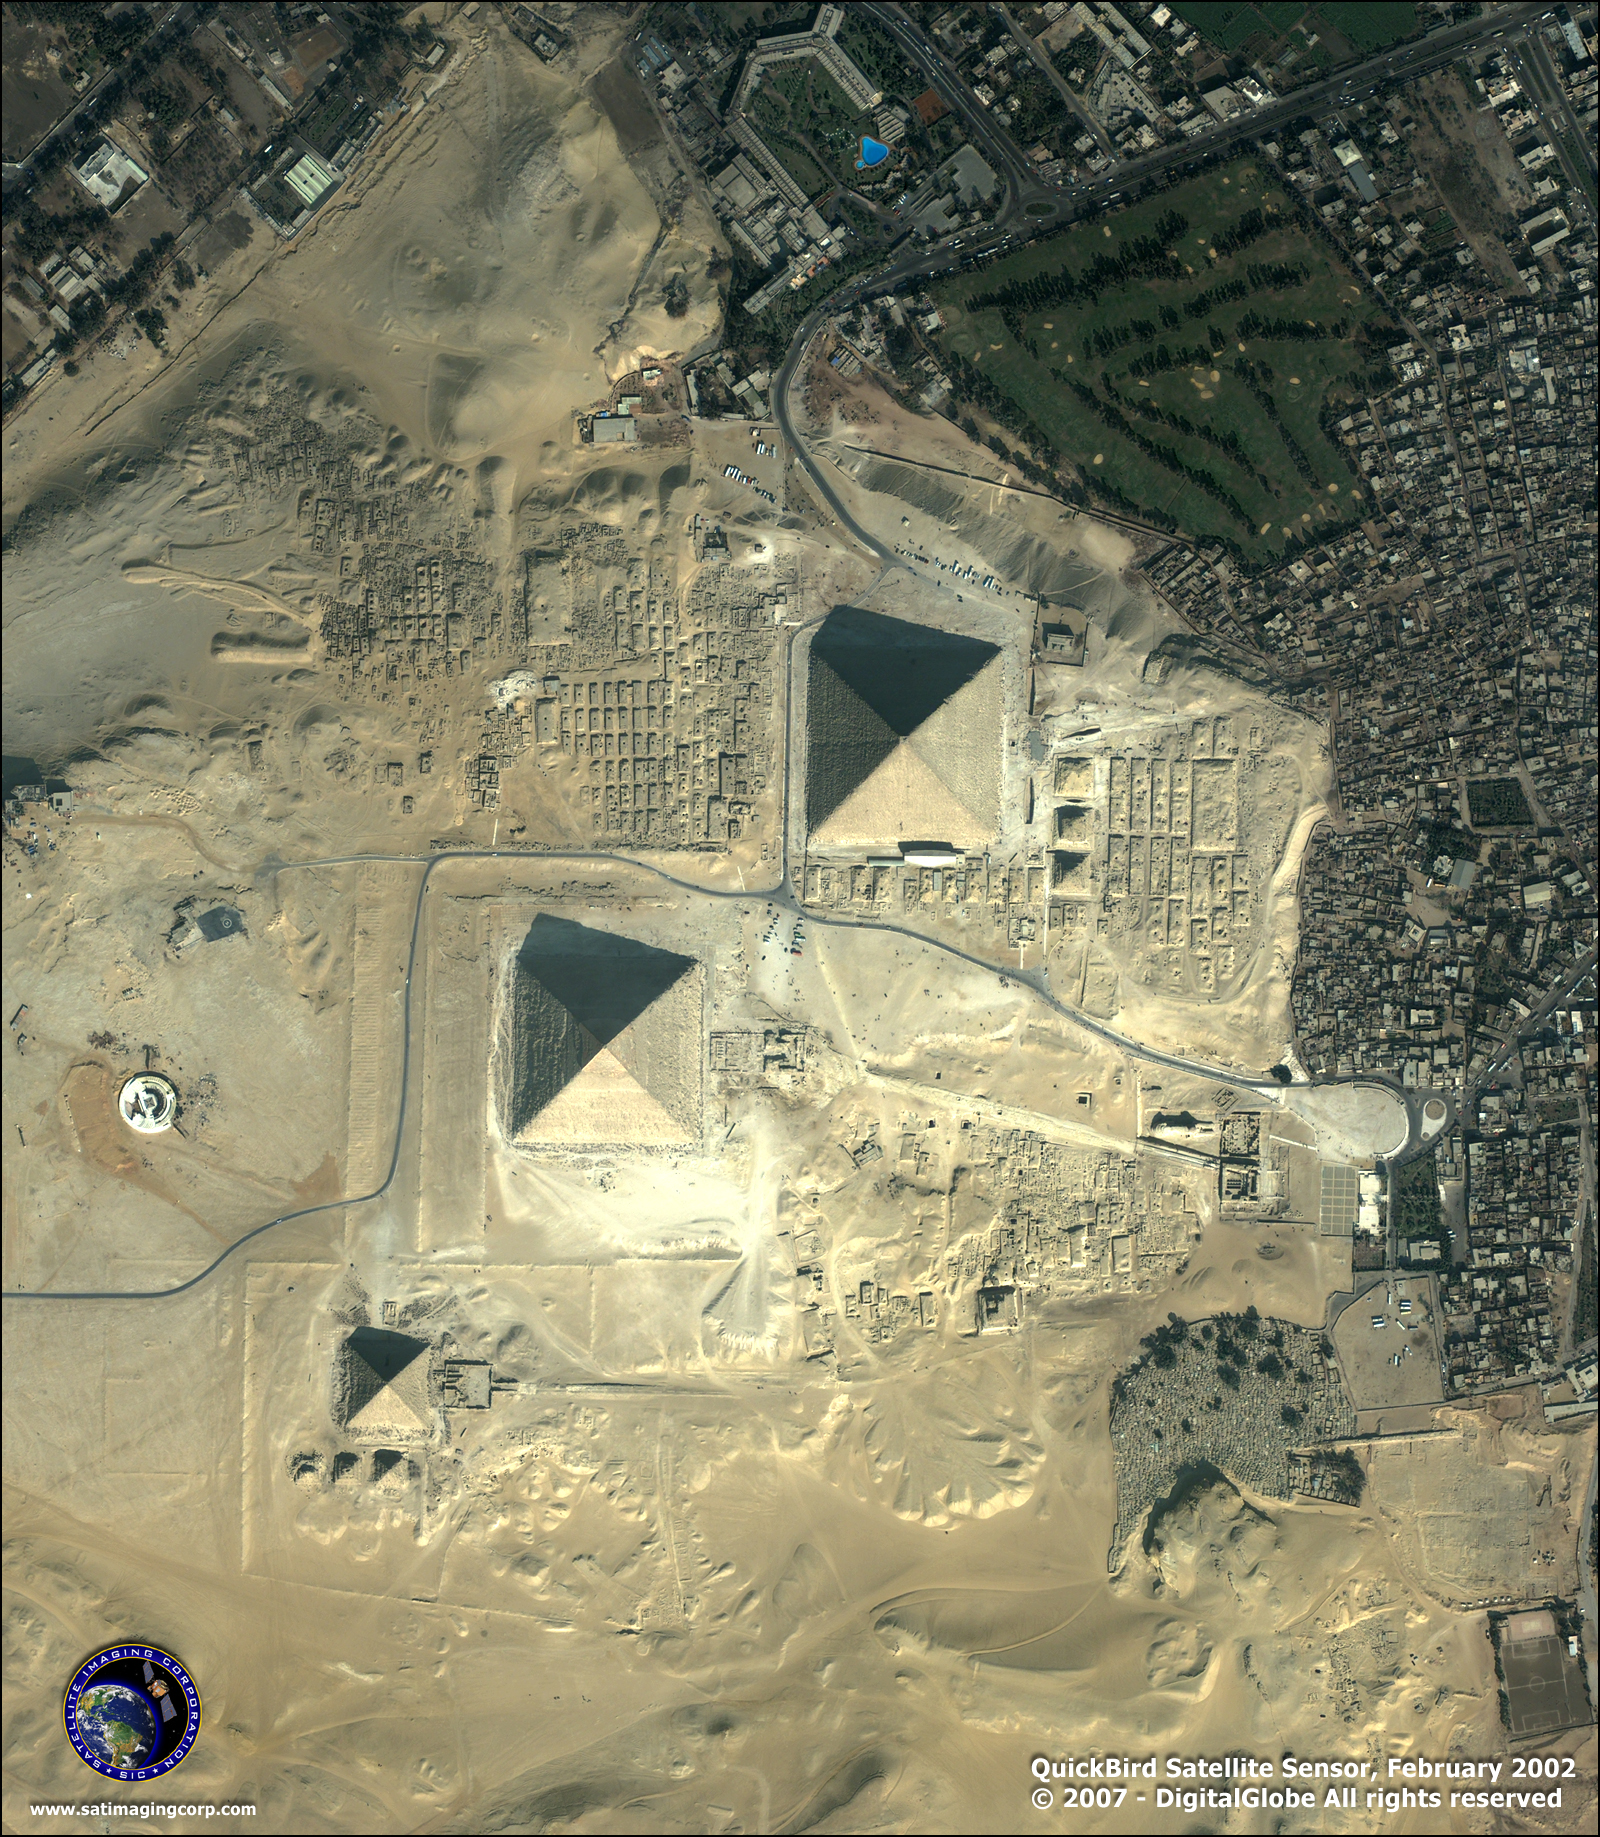 QuickBird Satellite Image of the Giza Pyramids | Satellite ... on traceable map of egypt, earth map of egypt, temperature of egypt, resource map of egypt, ancient egypt, agricultural map of egypt, old map of egypt, physical map of egypt, forecast map of egypt, google maps of egypt, precipitation of egypt, outline map of egypt, topographical map of egypt, statistics of egypt, hd map of egypt, satellite view of egypt, world map of egypt, square miles of egypt, aerial view of egypt, full map of egypt,